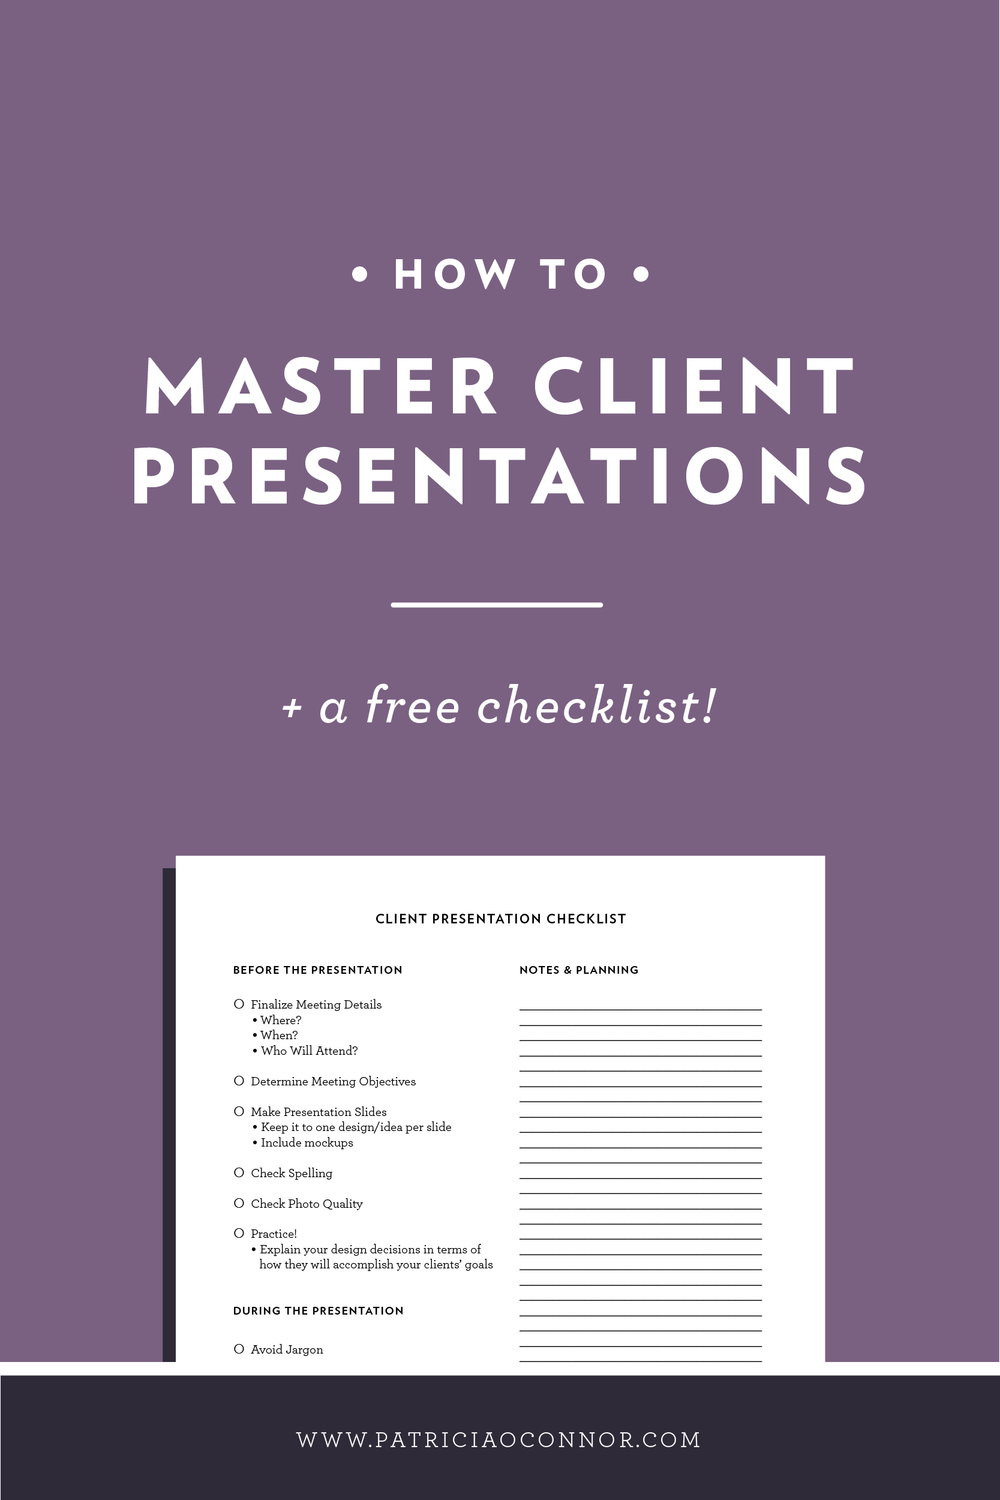 Learn how to master your client presentations with this post. Then download your free presentation checklist!